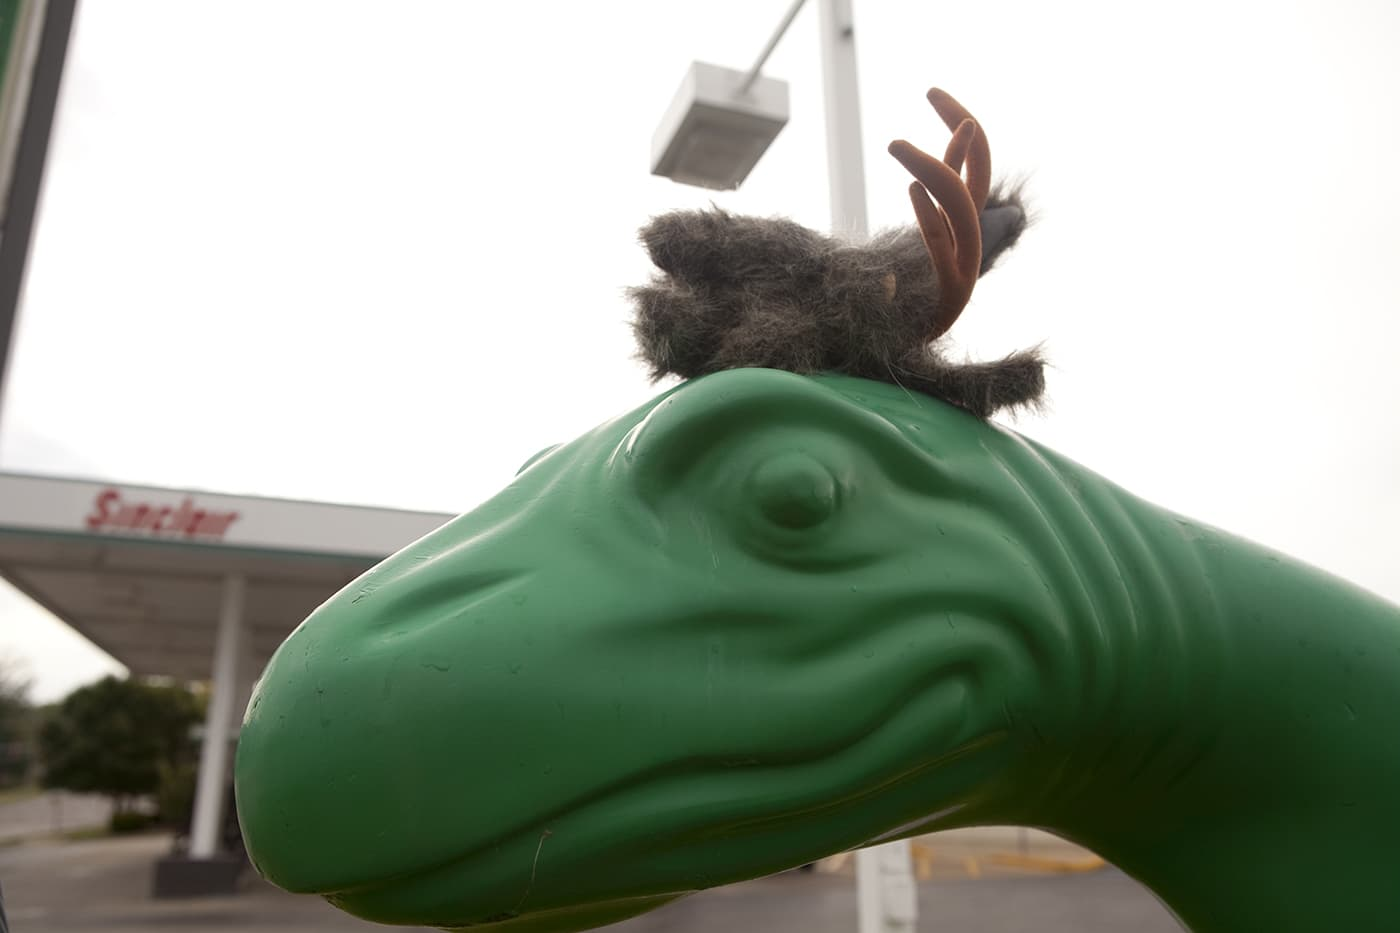 Flopsy the Jackalope with a Sinclair Station Dinosaur in Missouri